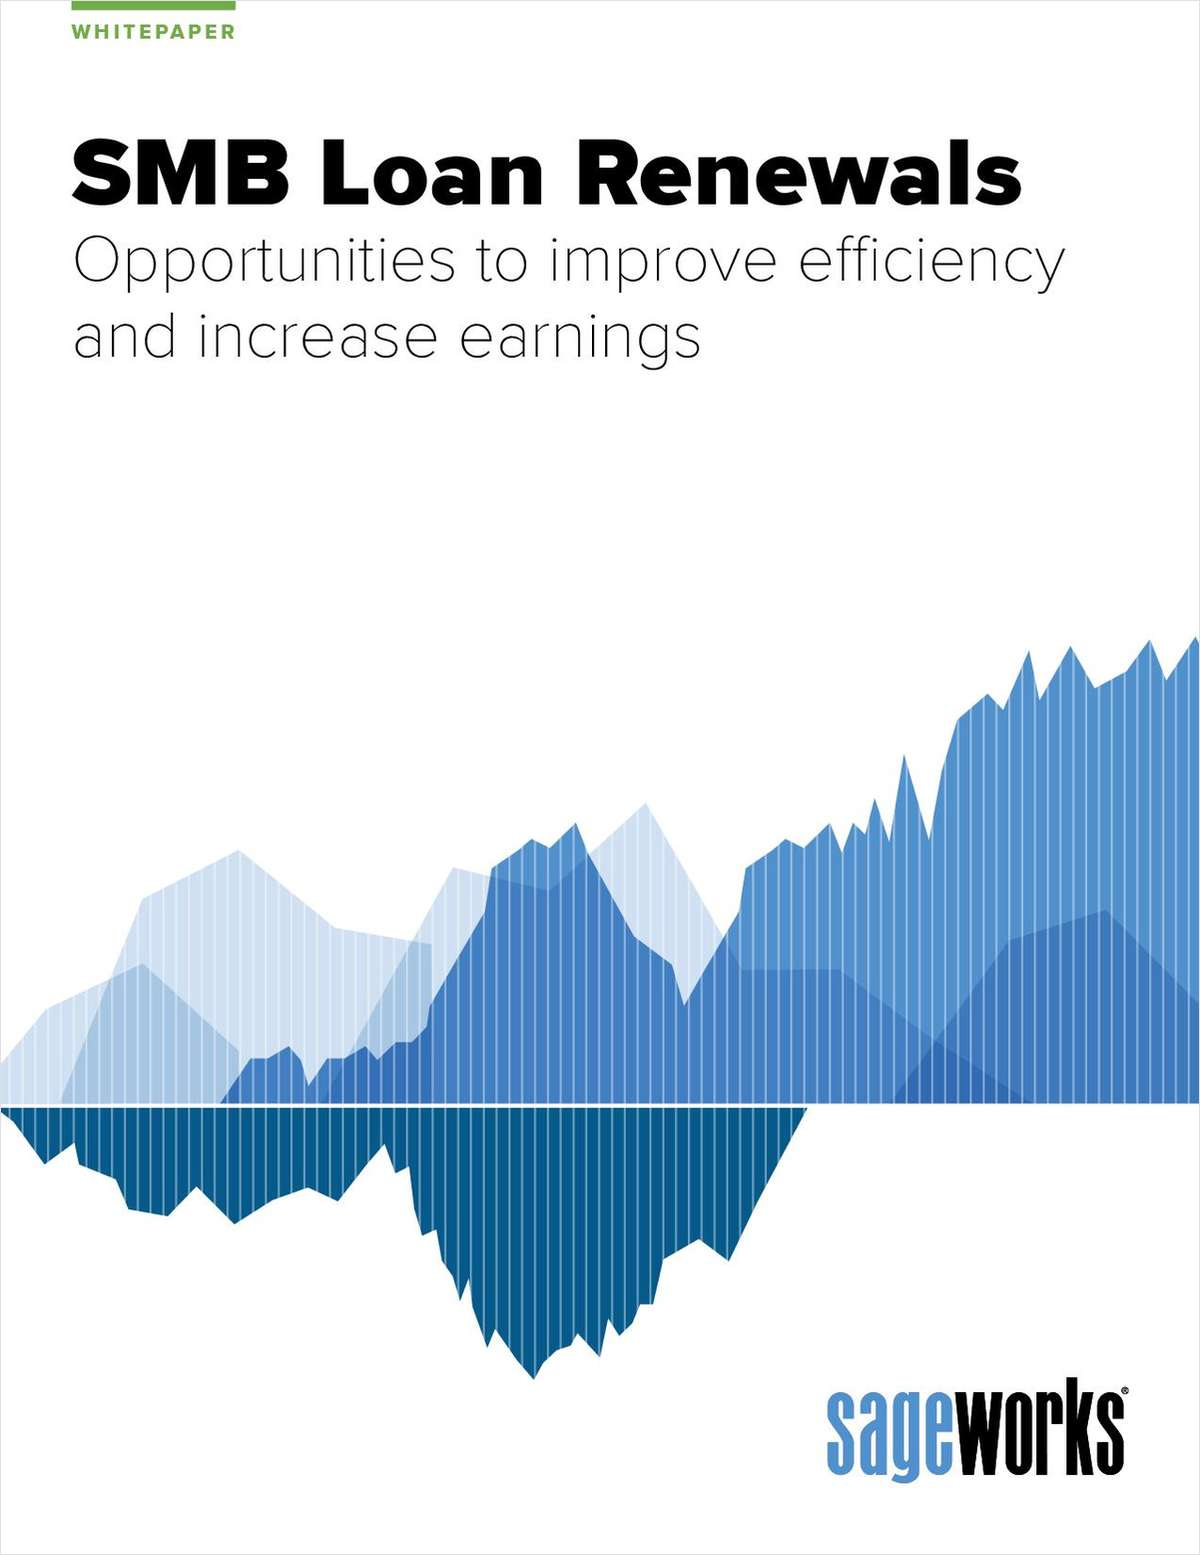 SMB Loan Renewals: Opportunities to Improve Efficiency and Increase Earnings